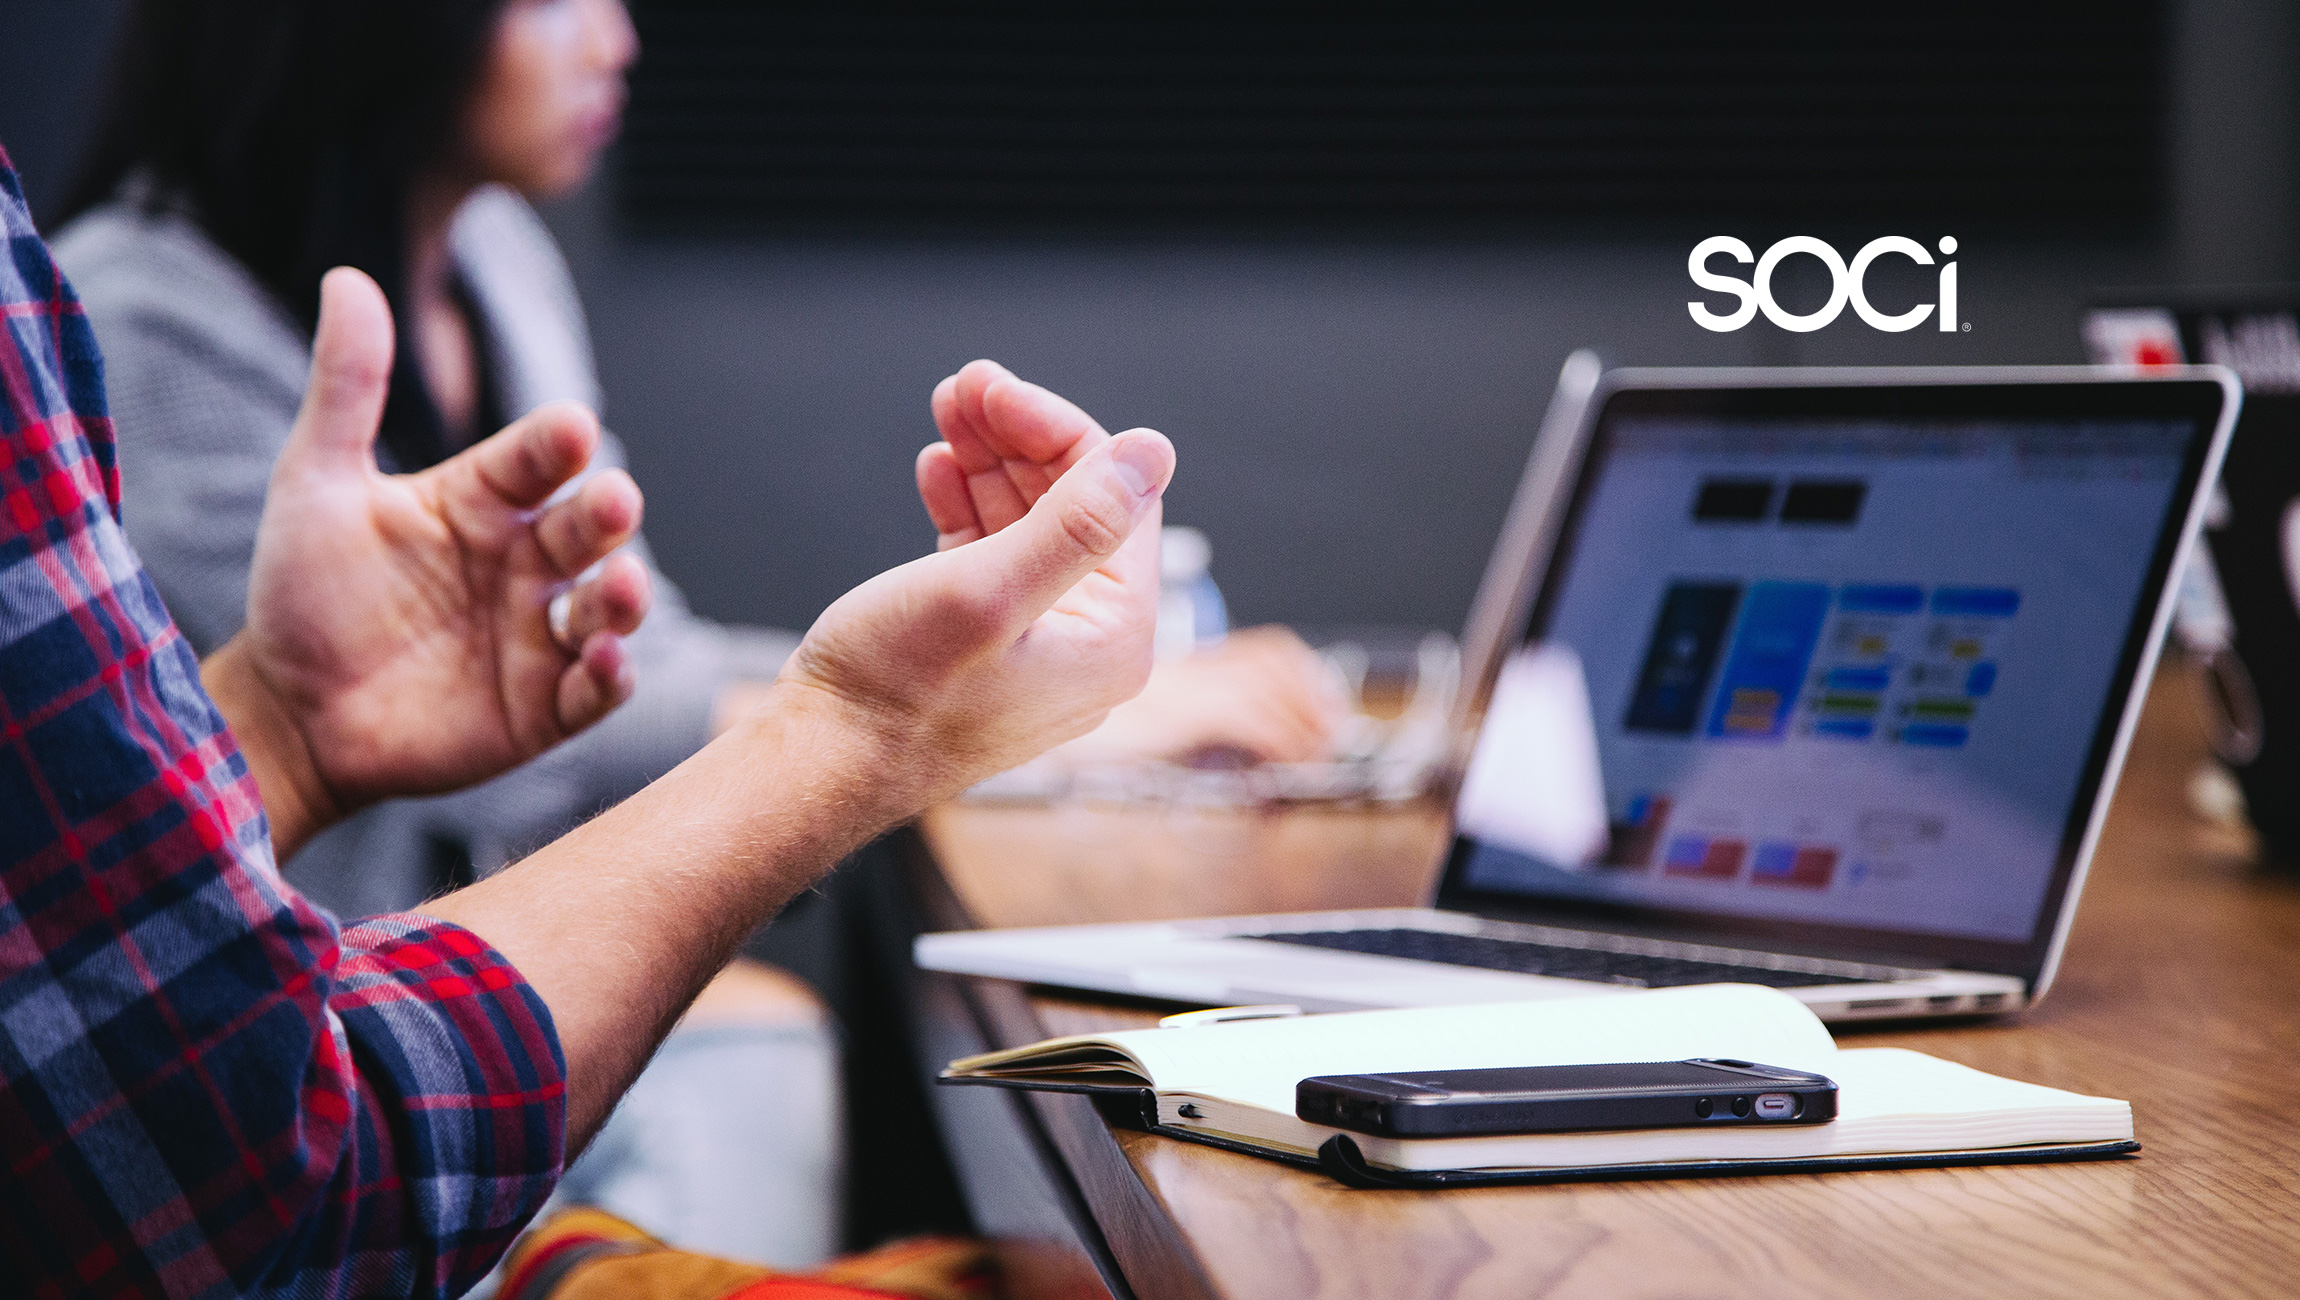 With $10.5 Million Series B, SOCi Sets Sights On Expanding Its Social Media and Reputation Management Offerings for Multi-Location Brands